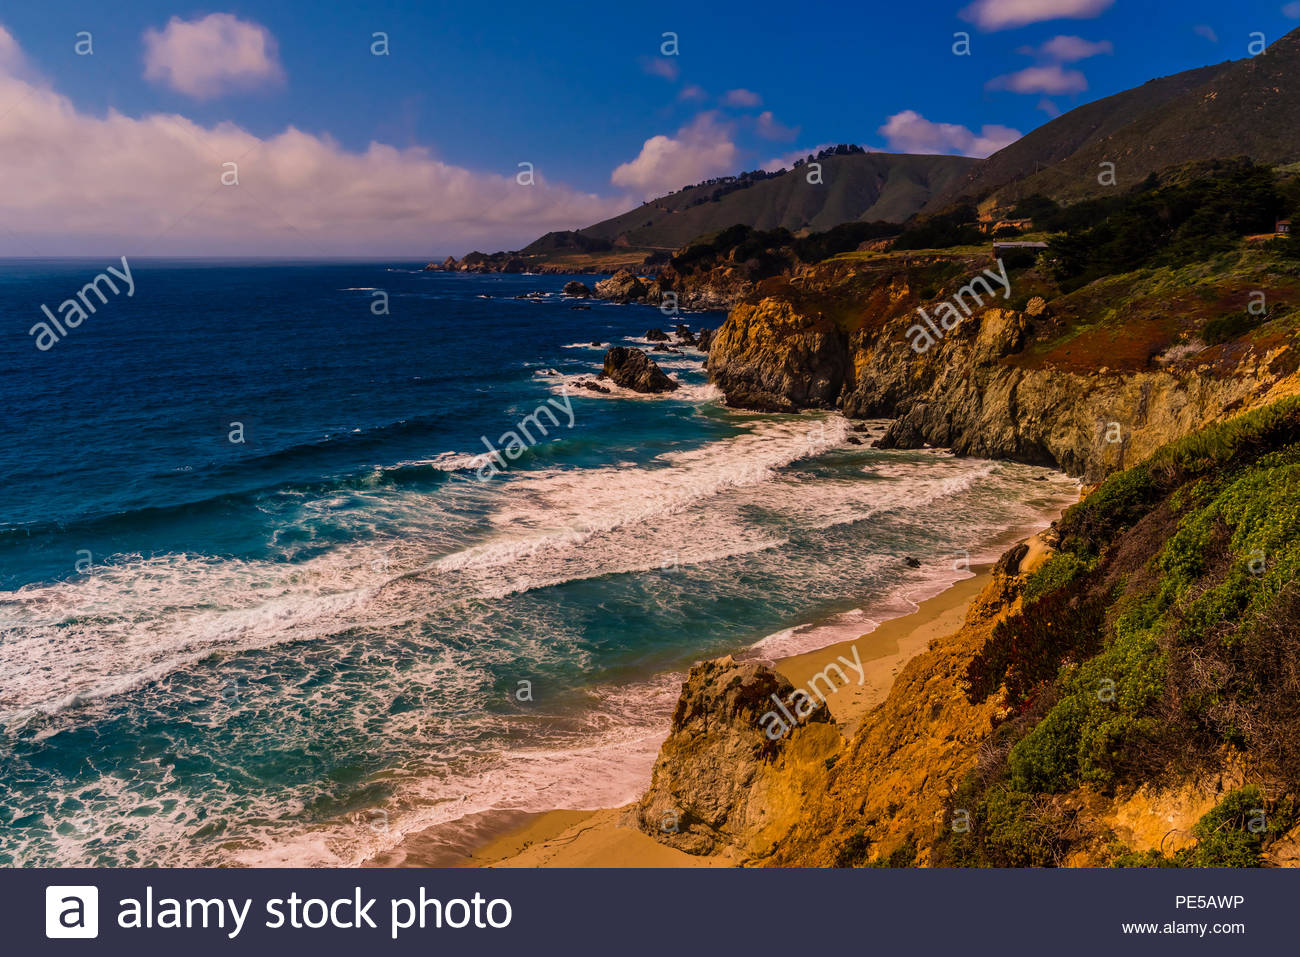 Costa de Big Sur entre Carmel Highlands y Big Sur, el Condado de Monterey, California, USA. Imagen De Stock